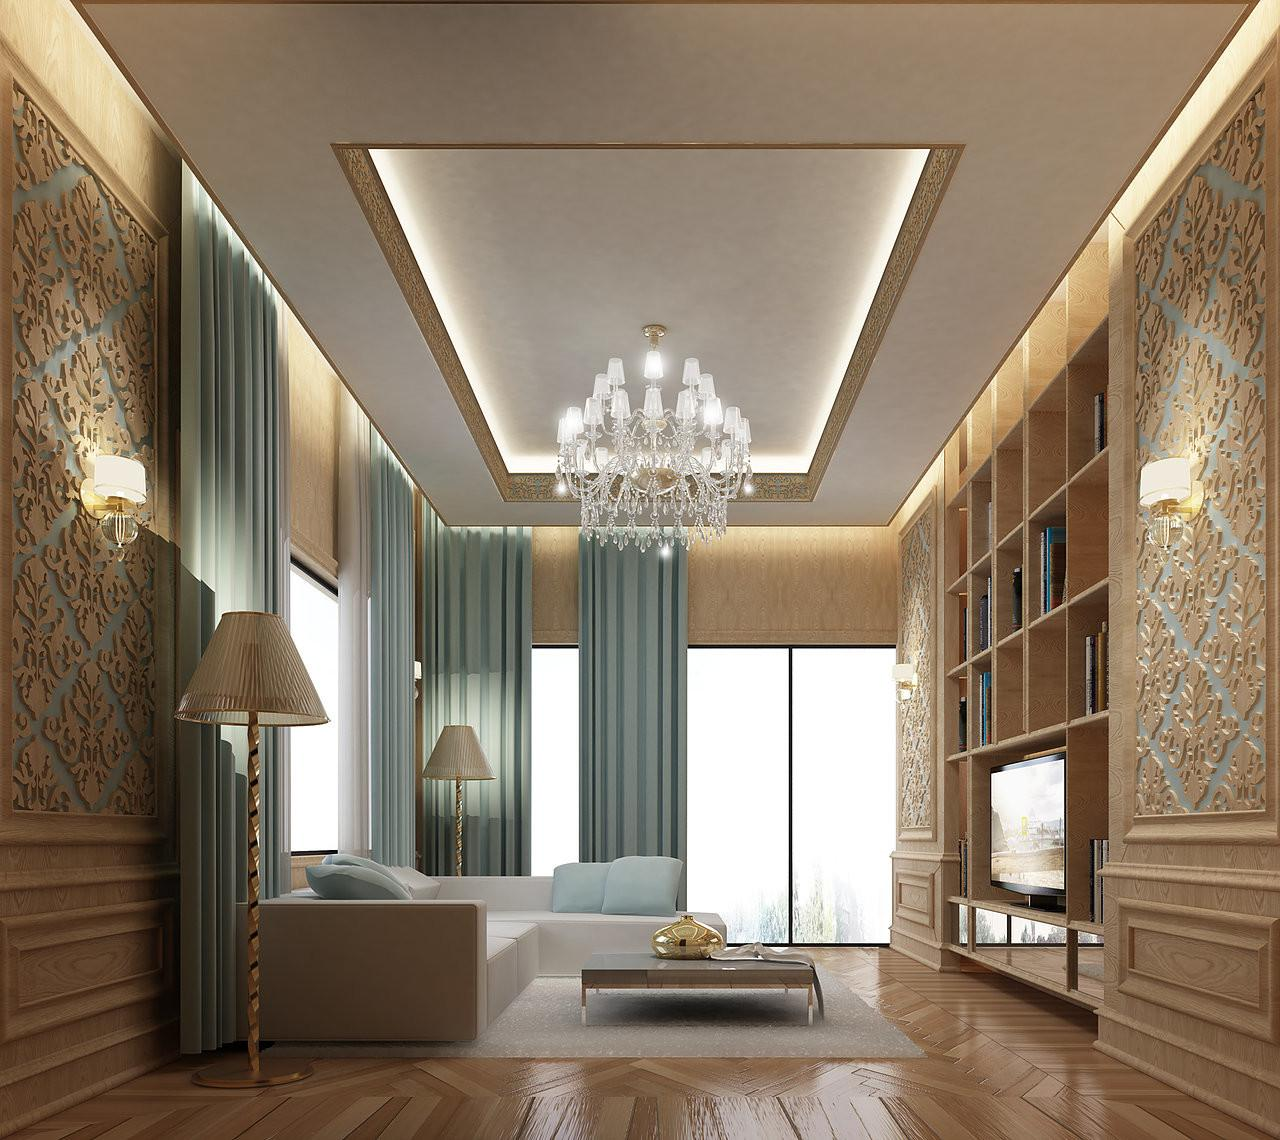 Luxury Interior Design Home Unforgettable House Plan Dubai